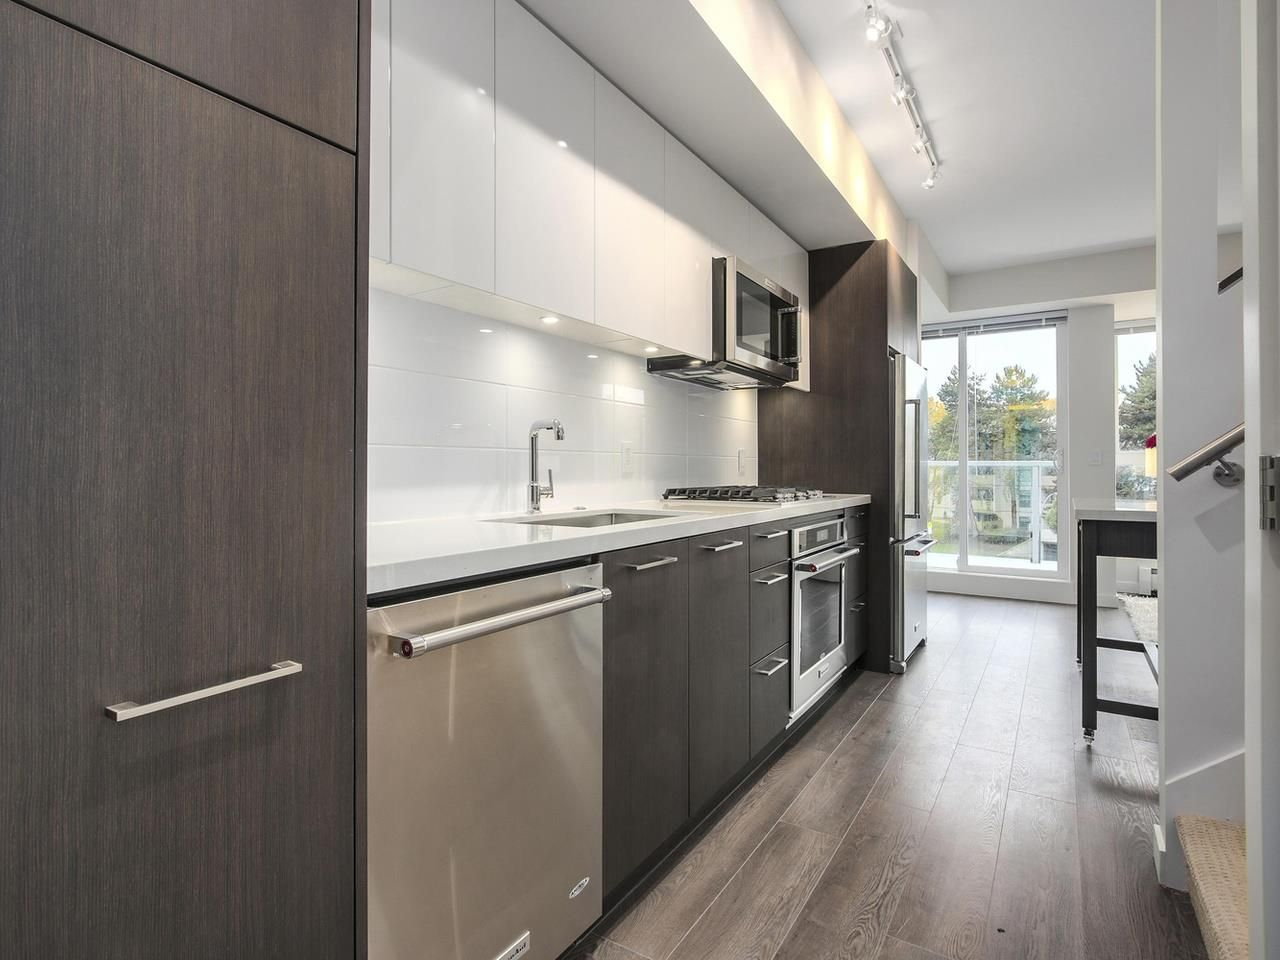 """Photo 6: Photos: 604 417 GREAT NORTHERN Way in Vancouver: Mount Pleasant VE Condo for sale in """"CANVAS"""" (Vancouver East)  : MLS®# R2118078"""